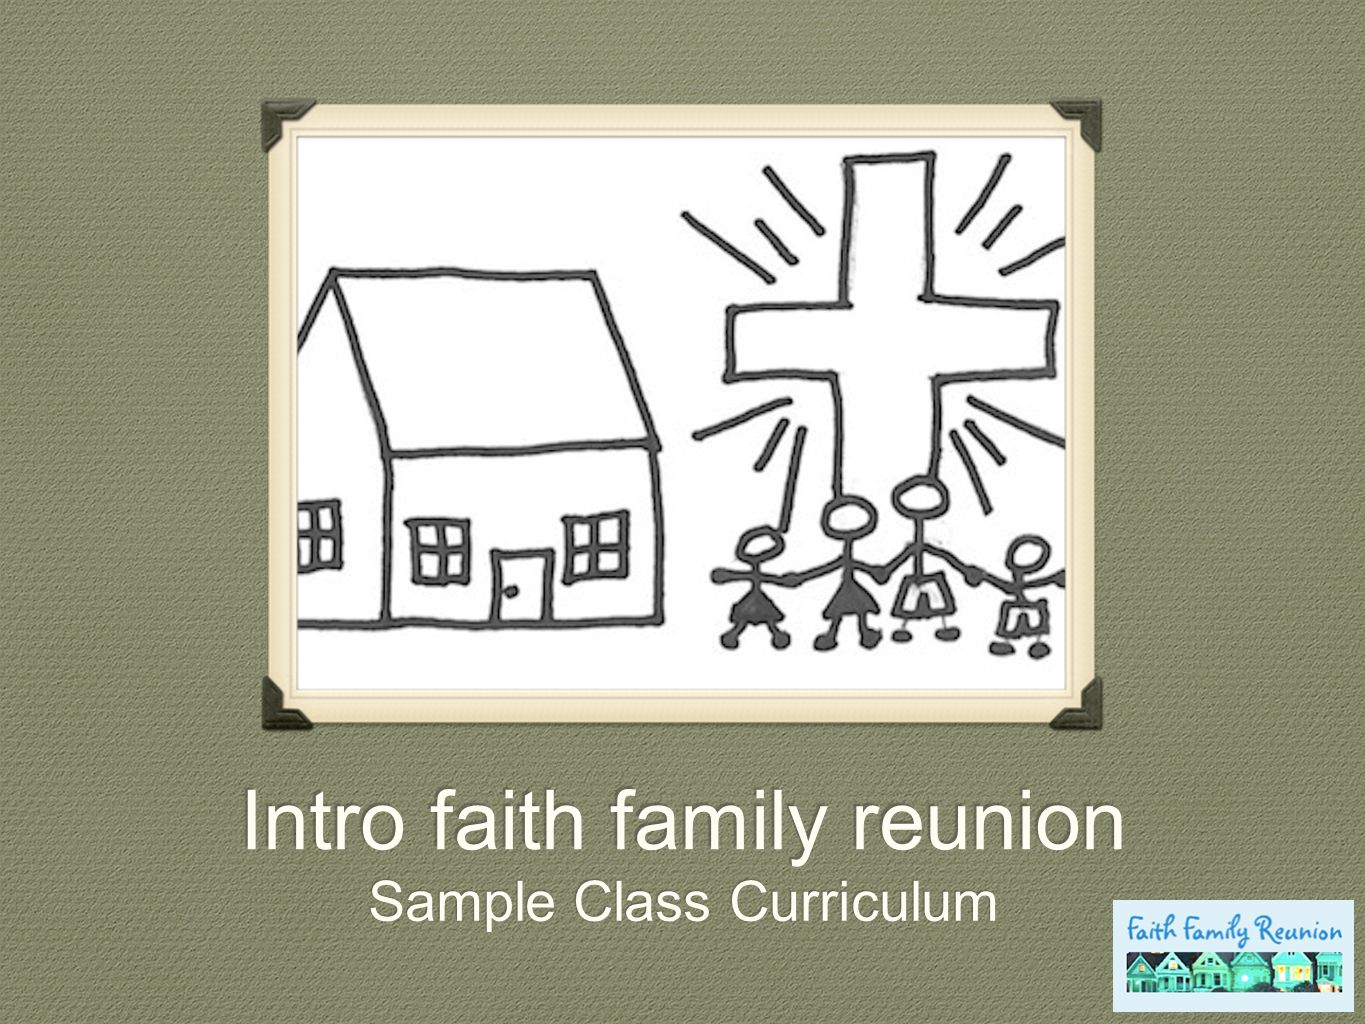 Intro faith family reunion Sample Class Curriculum